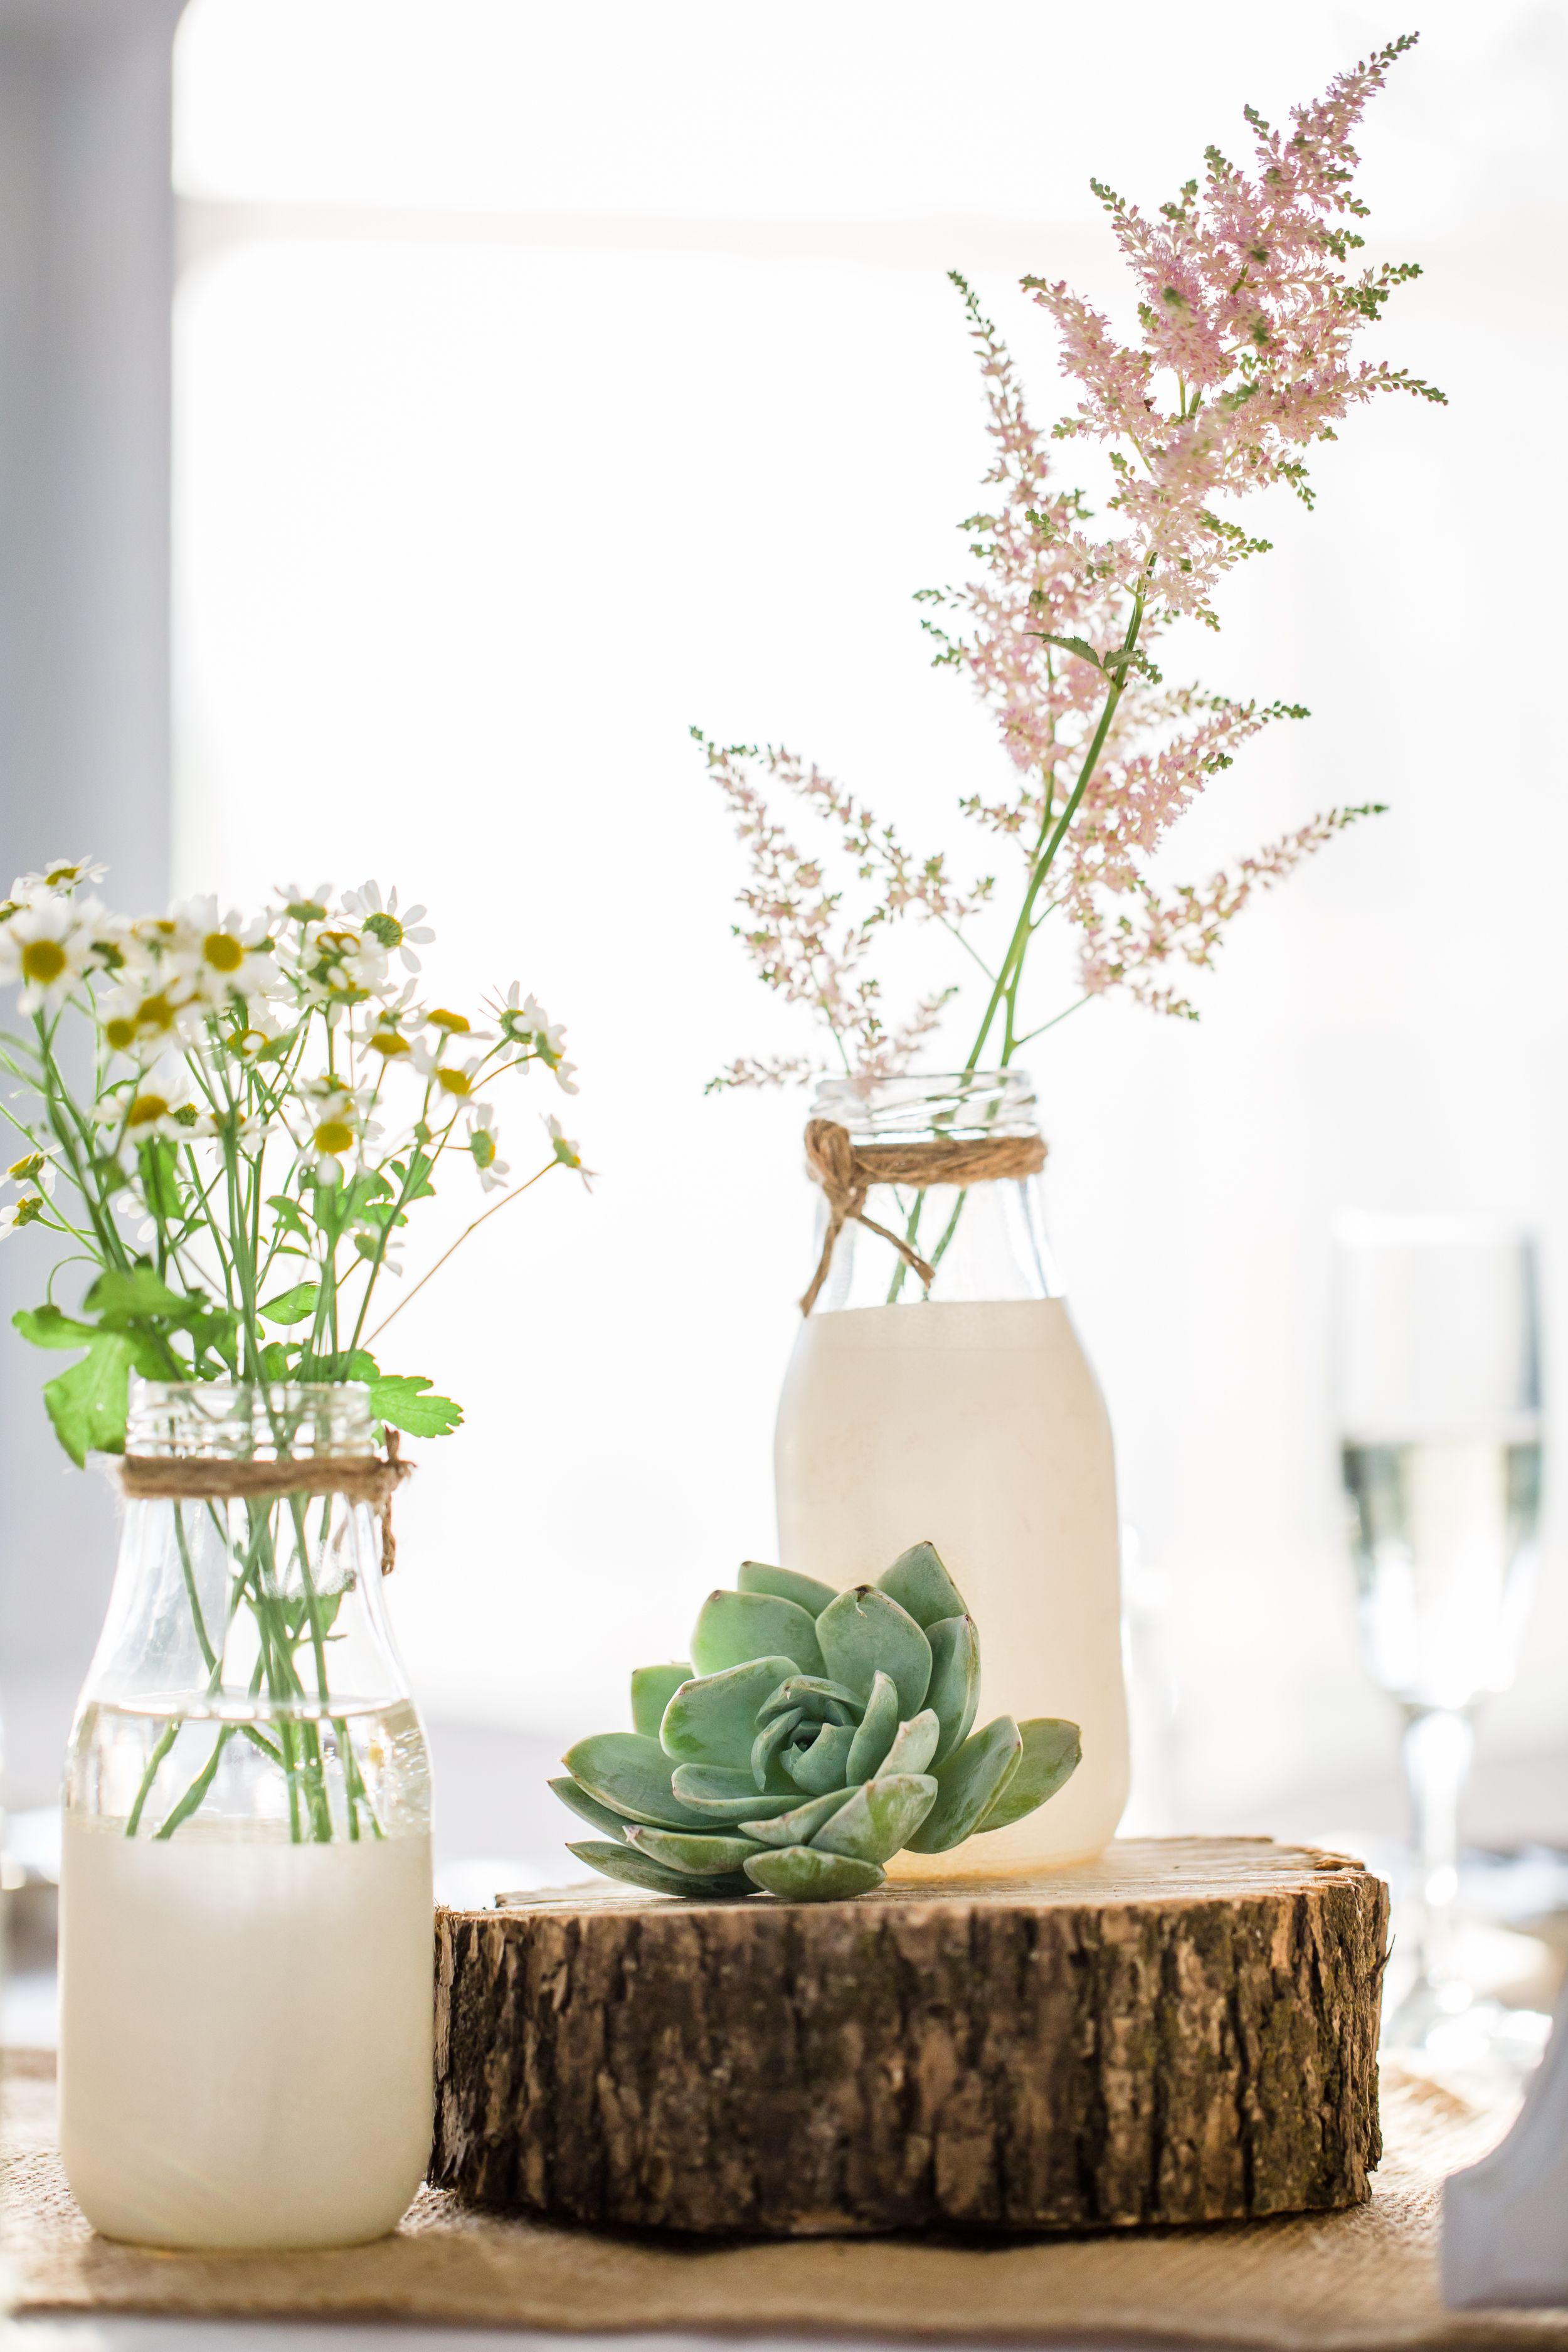 Diy milk bottle centerpieces with wildflowers wedding